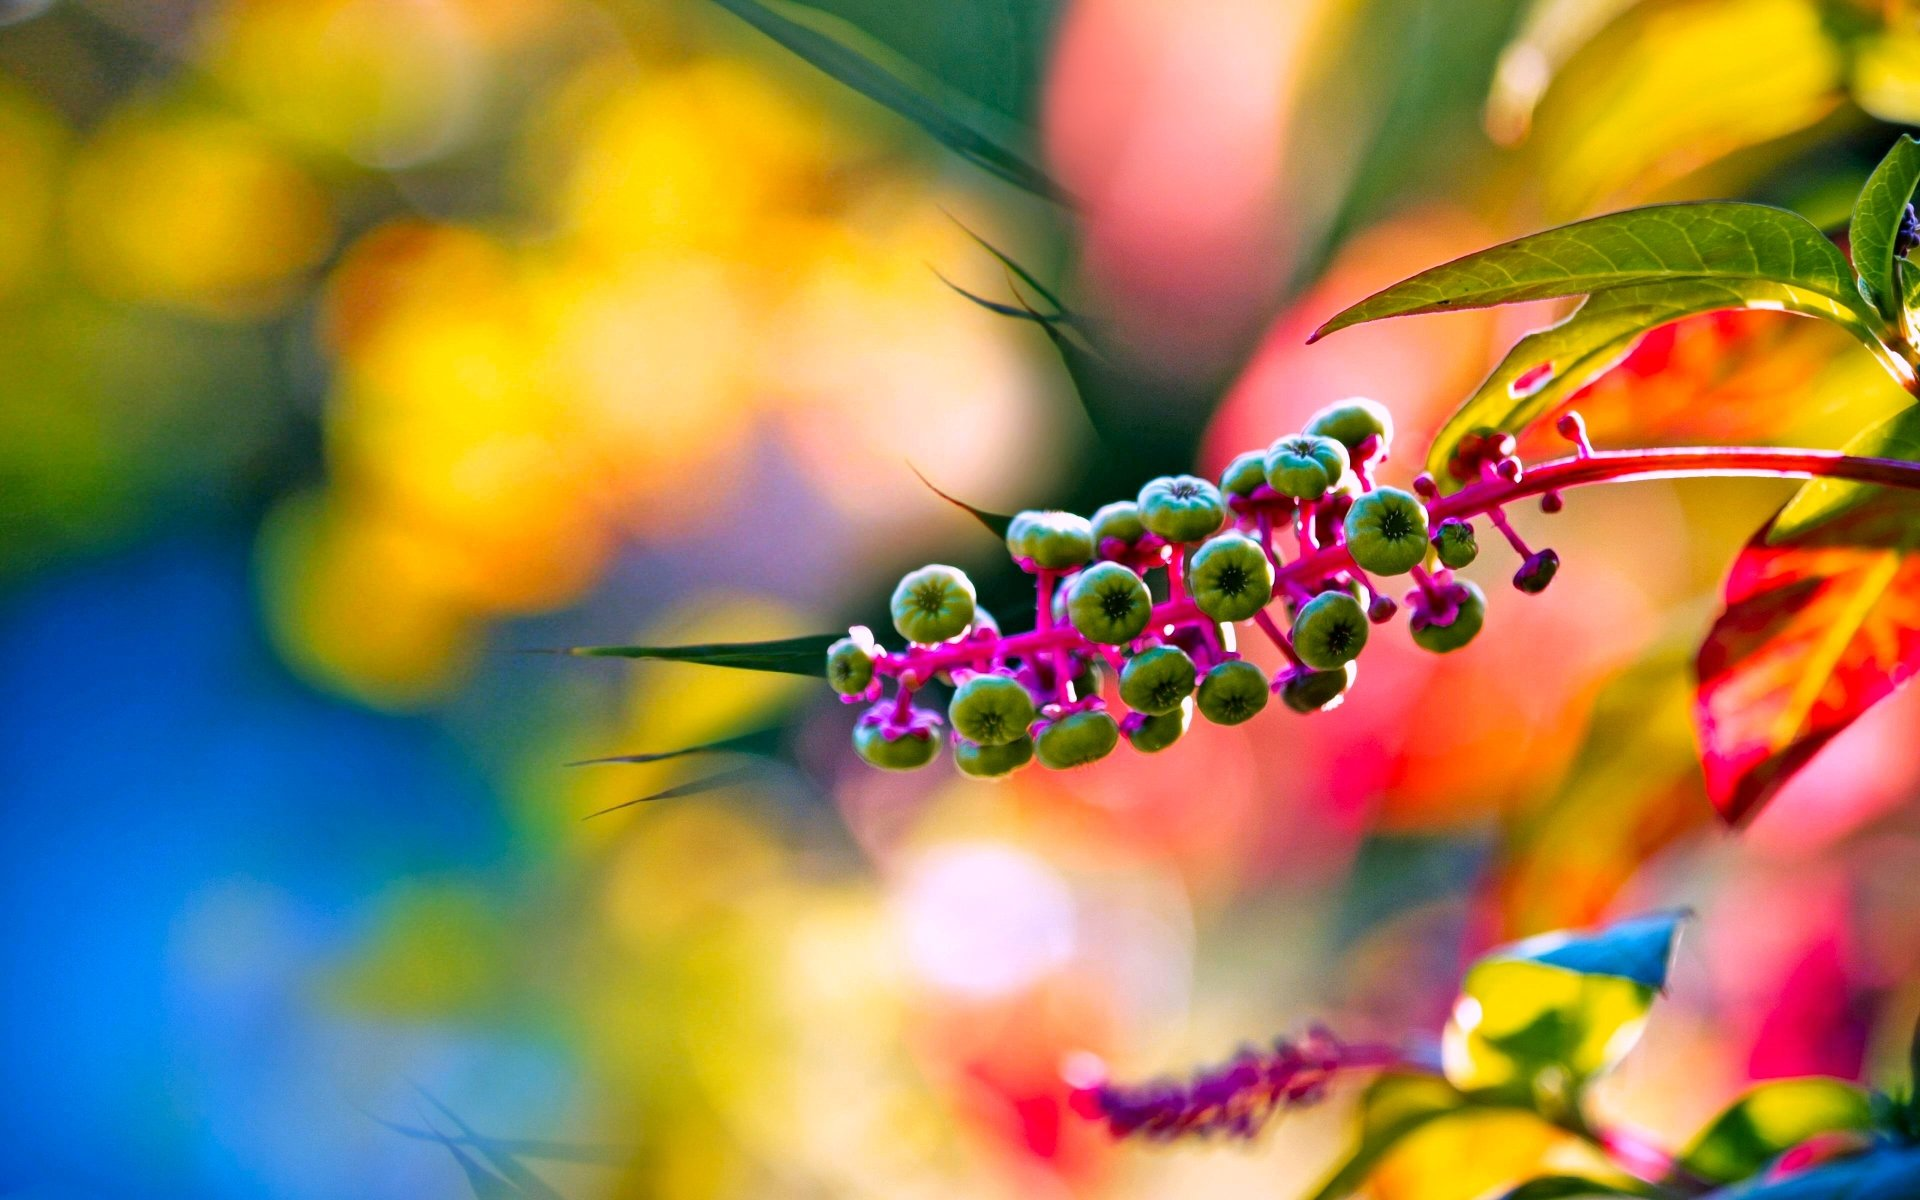 Earth - Spring  Colorful Sunny Nature Blur Bokeh Wallpaper